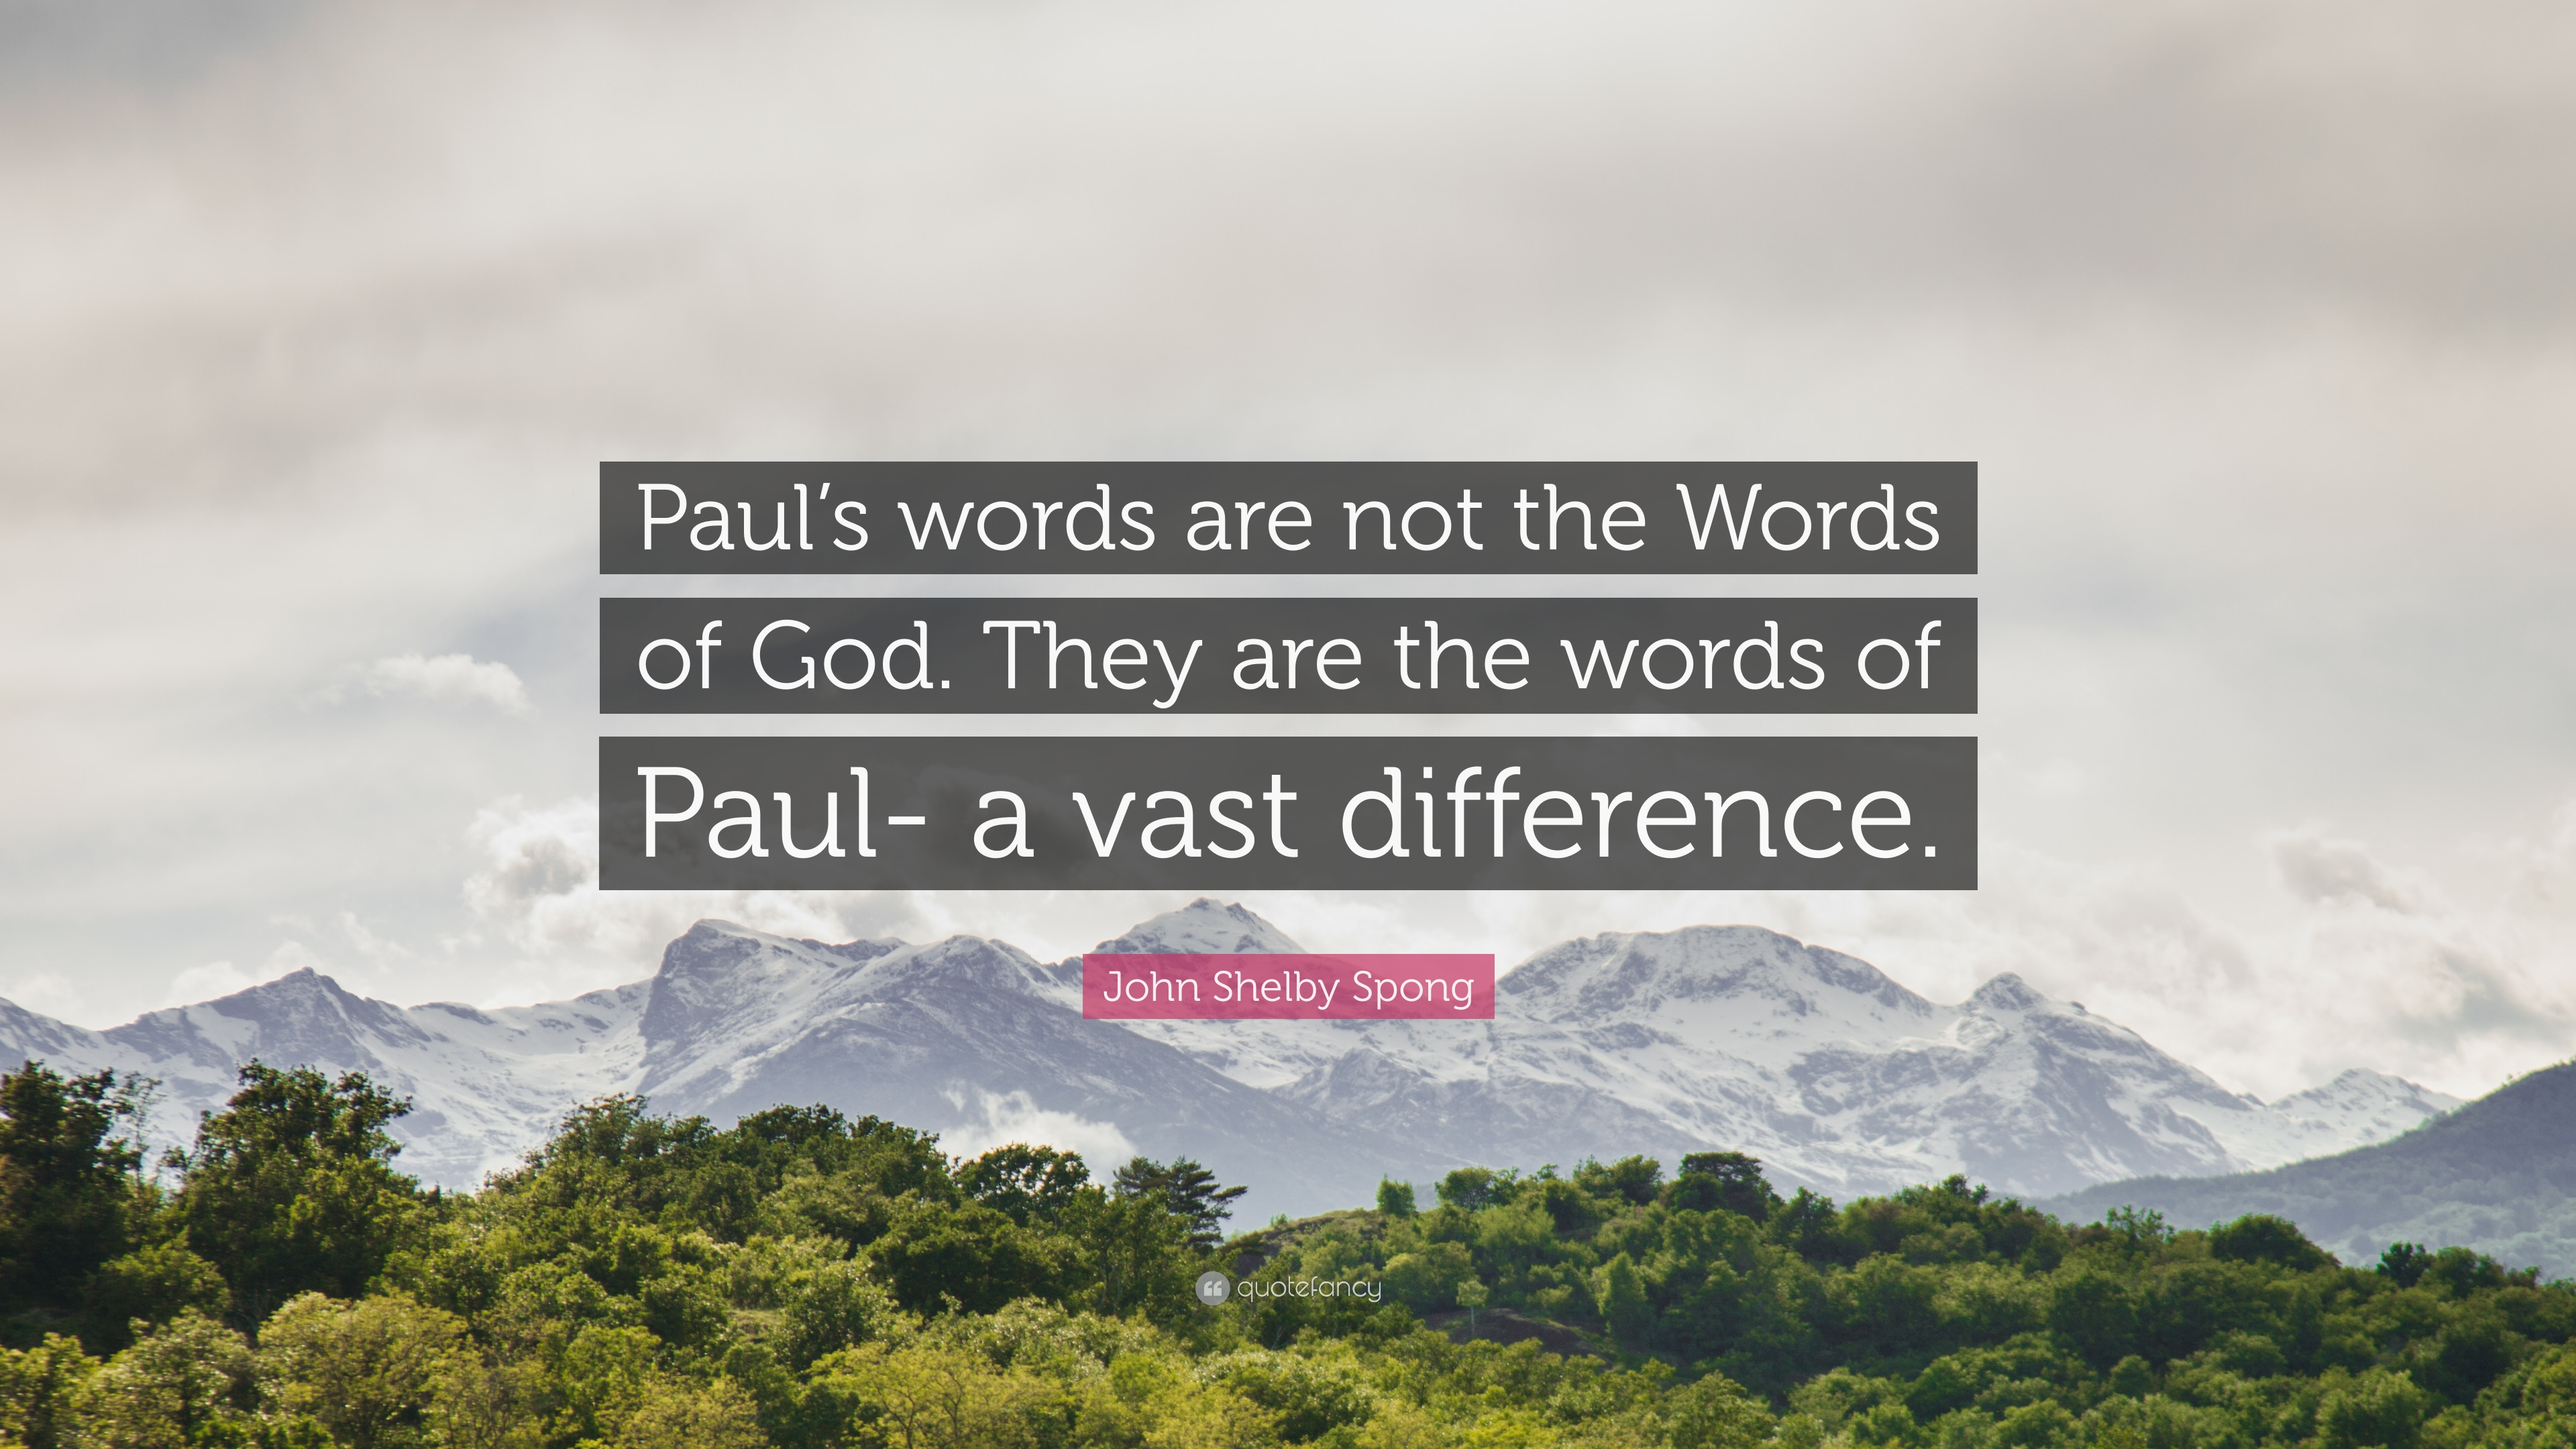 John Shelby Spong Quote Pauls Words Are Not The Words Of God